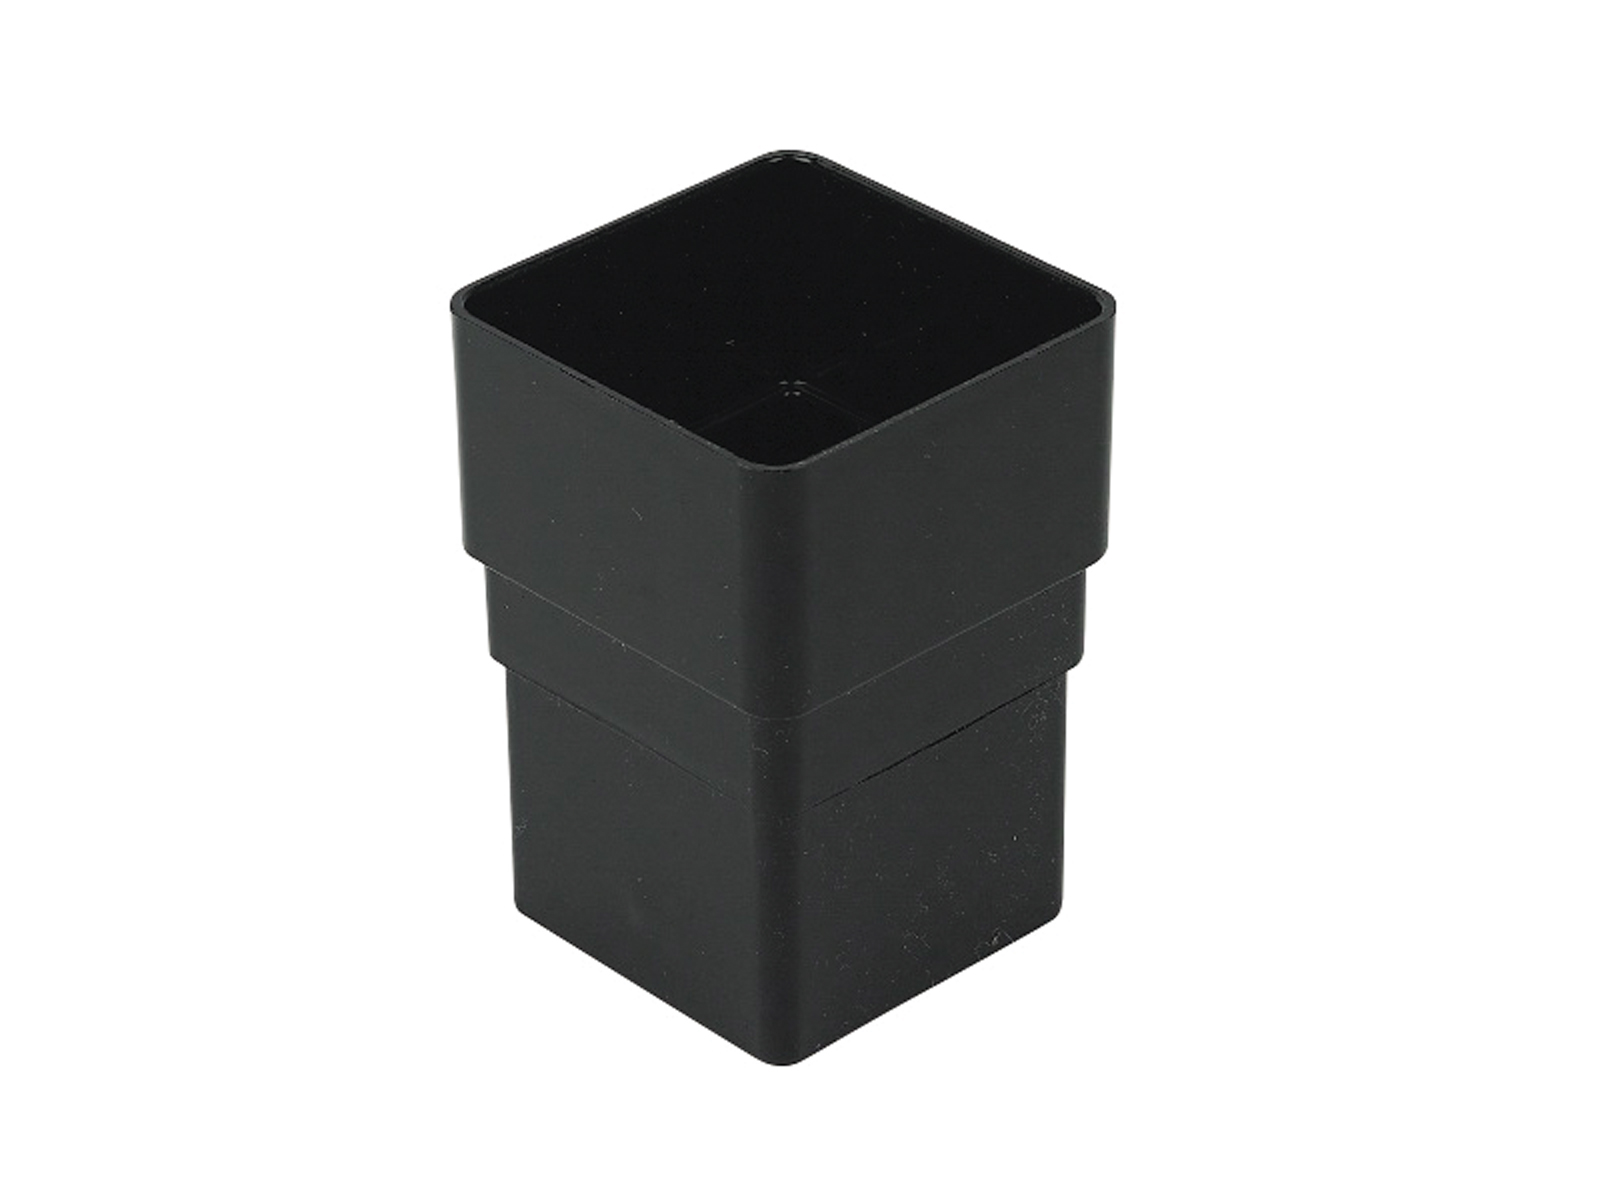 FLOPLAST RSS1BL 65MM SQUARE DOWNPIPE - PIPE SOCKET - BLACK